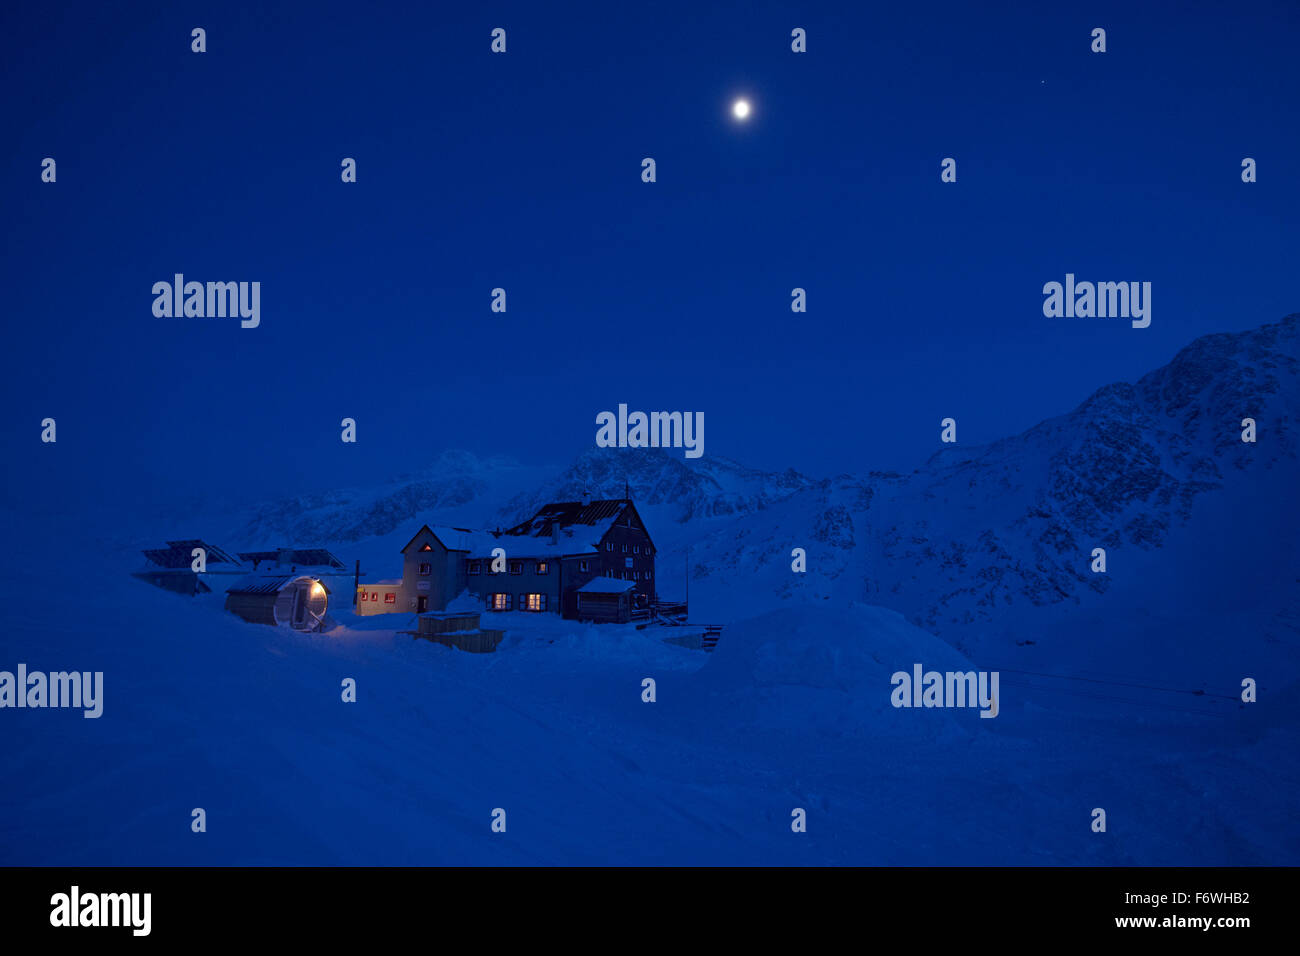 Full moon over mountain hut at night, Kurzras, Schnalstal, South Tyrol, Alto Adige, Italy - Stock Image